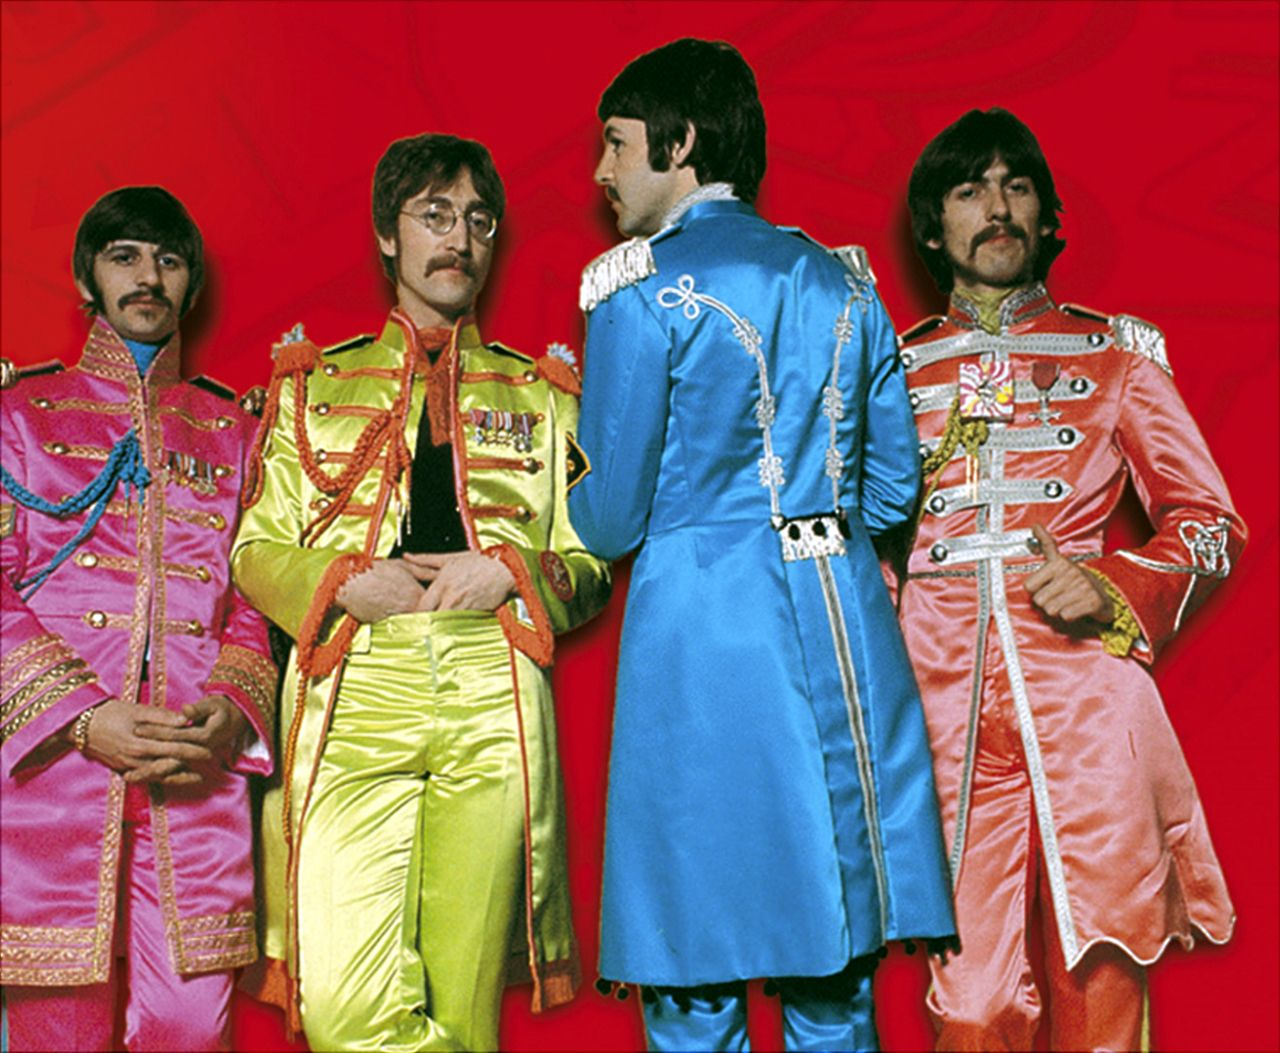 Sgt Pepper S Lonely Hearts Club Band Ringo John Paul George The Beatles Sgt Peppers Lonely Hearts Club Band Beatles Costume